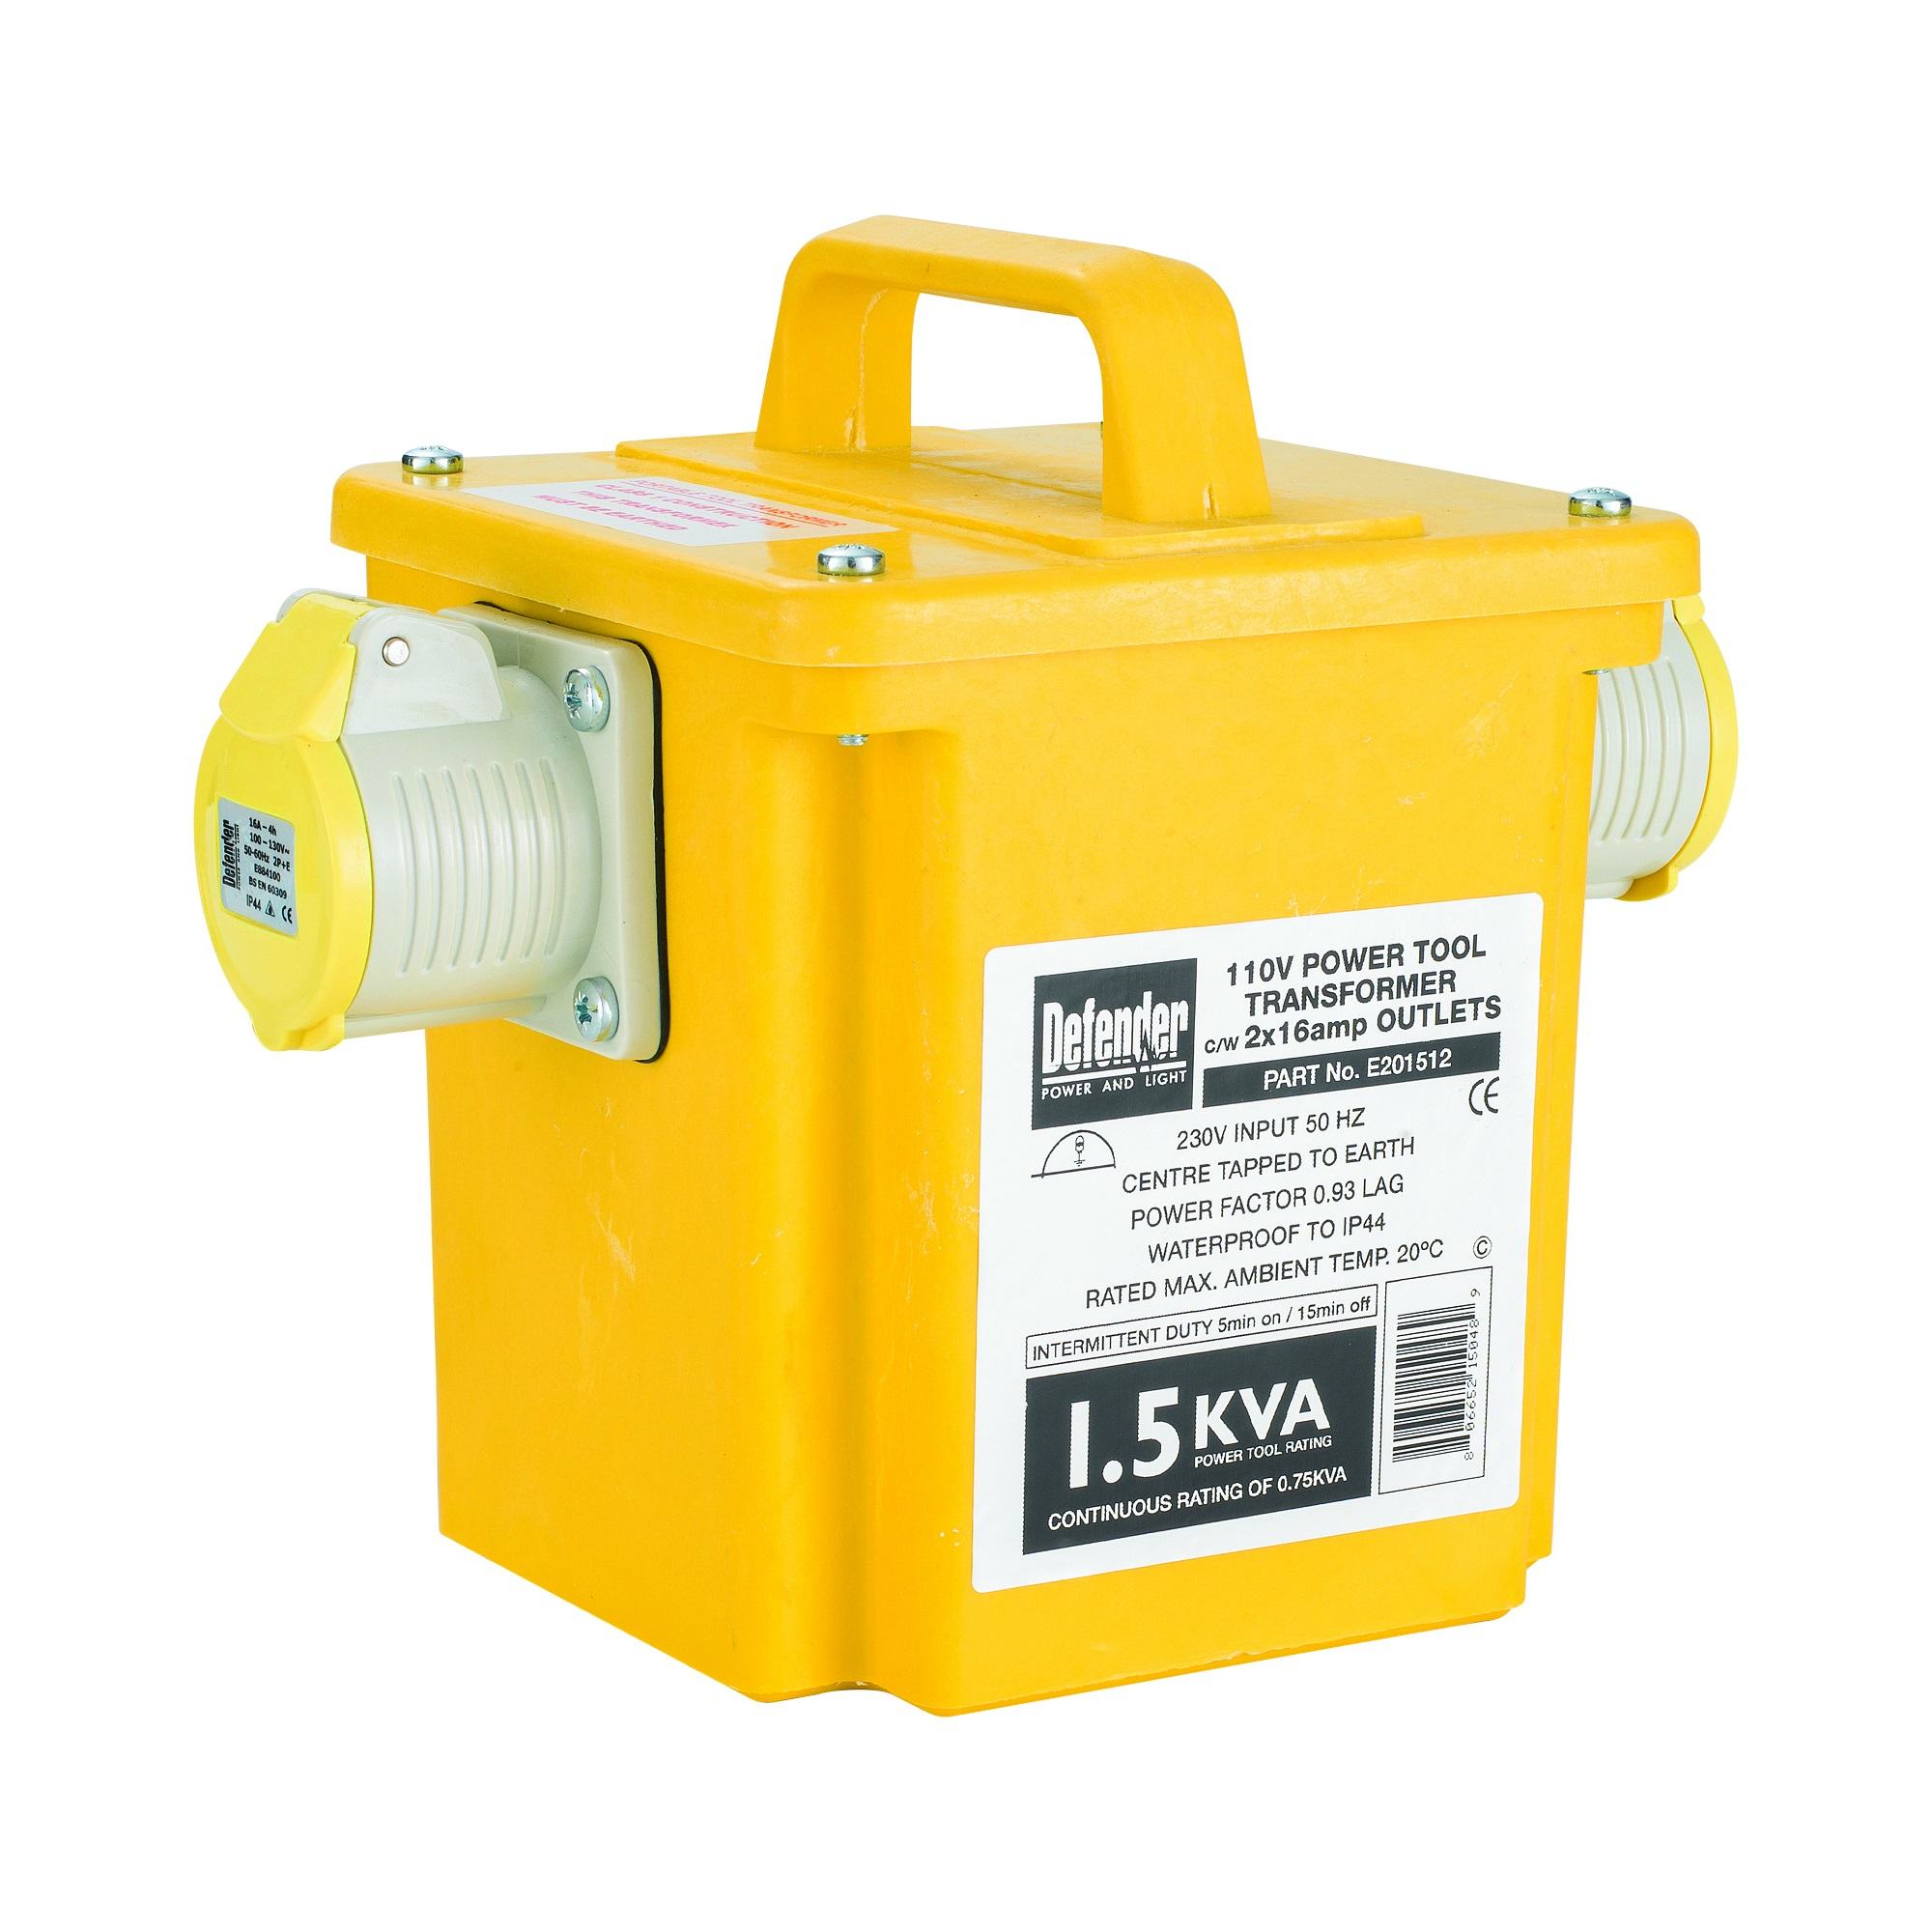 Diagonal view of yellow Defender 1.5kVA transformer with 2 x 16A outlets, carry handle and Defender branded information label